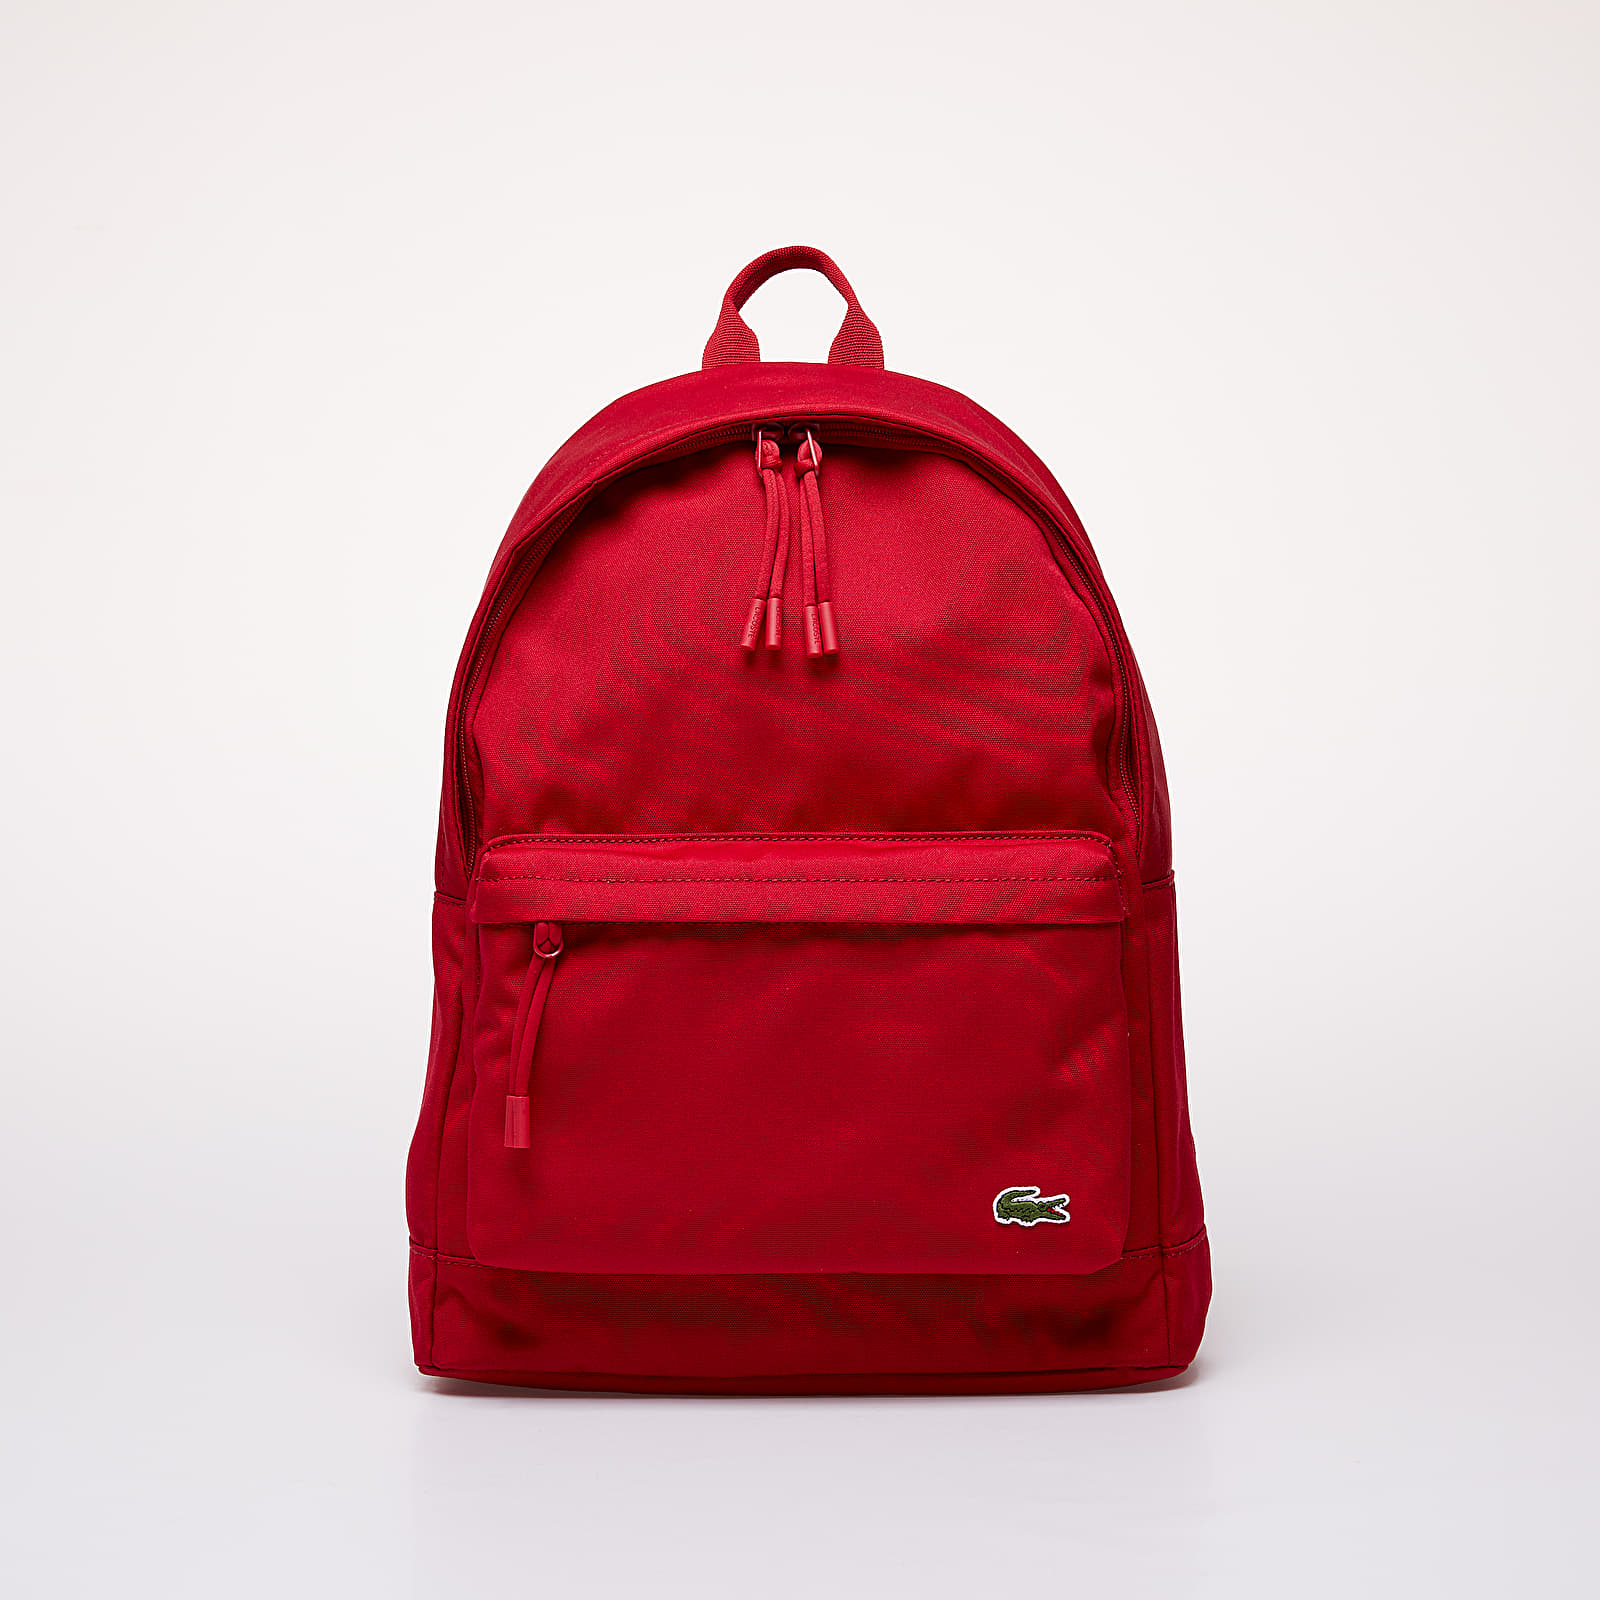 Backpacks LACOSTE Neocroc Classic Solid Backpack Red